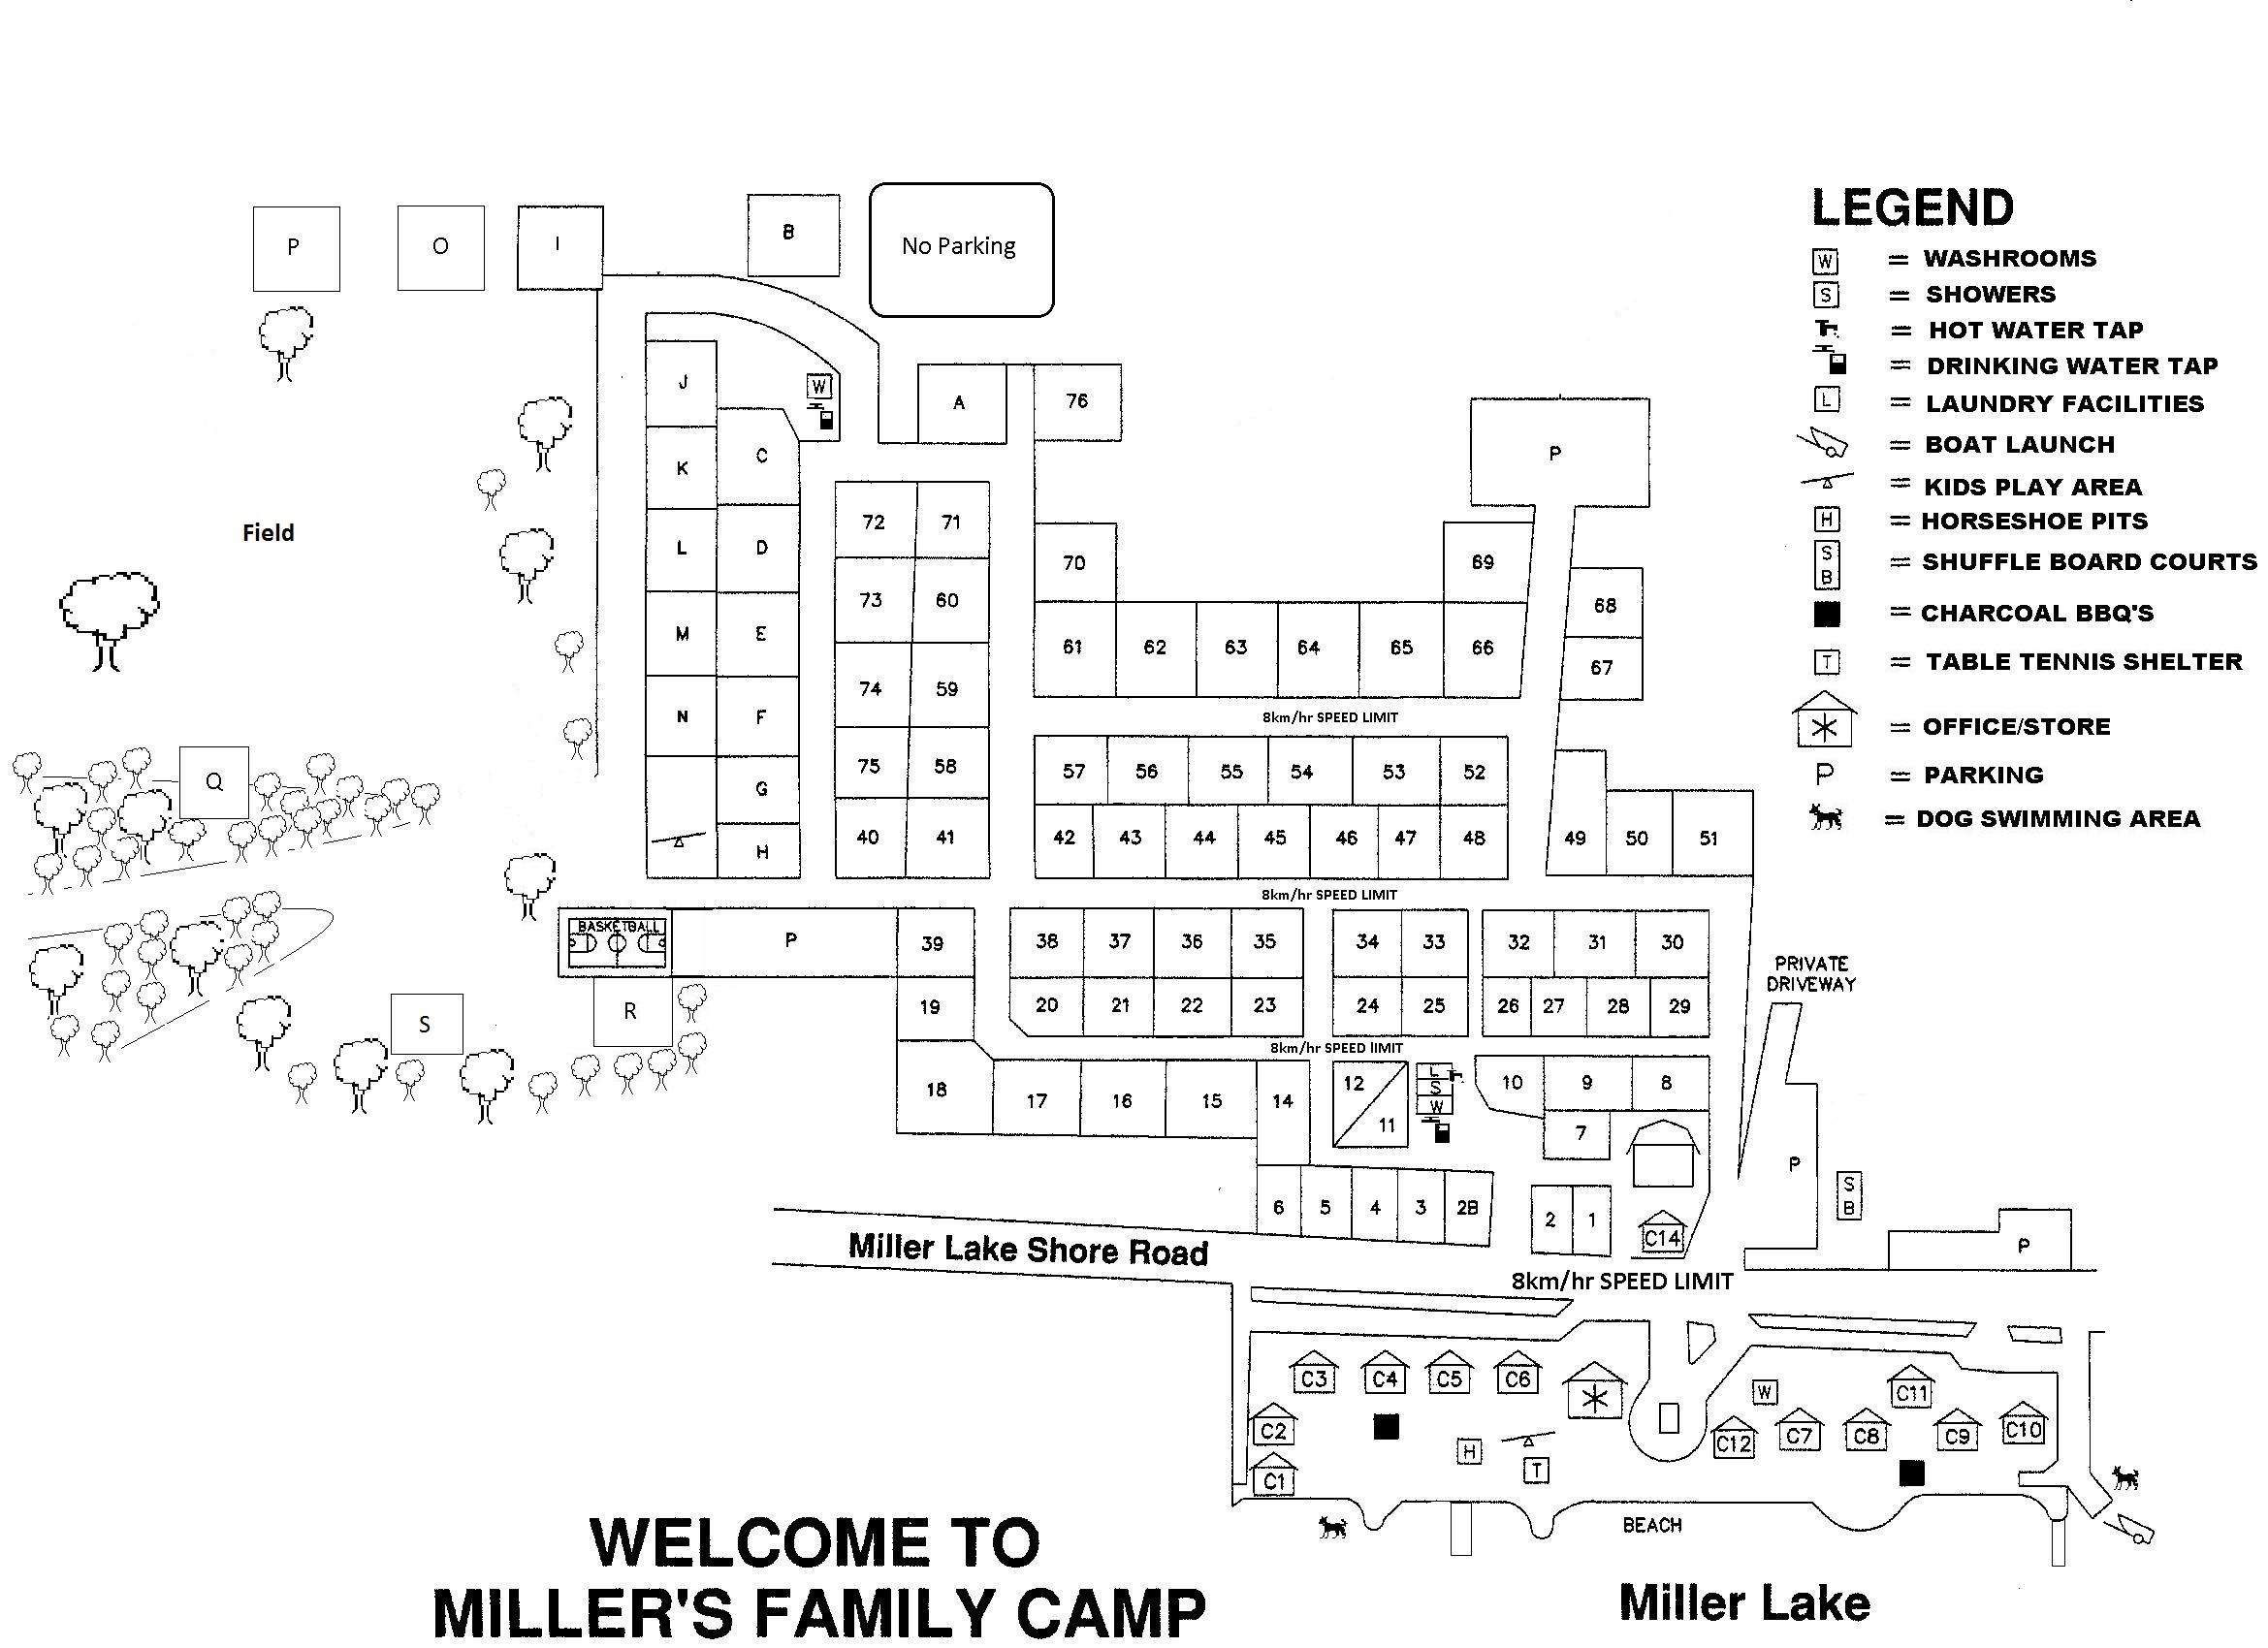 Enjoy quiet family camping at Miller's Family Camp - Miller's Family